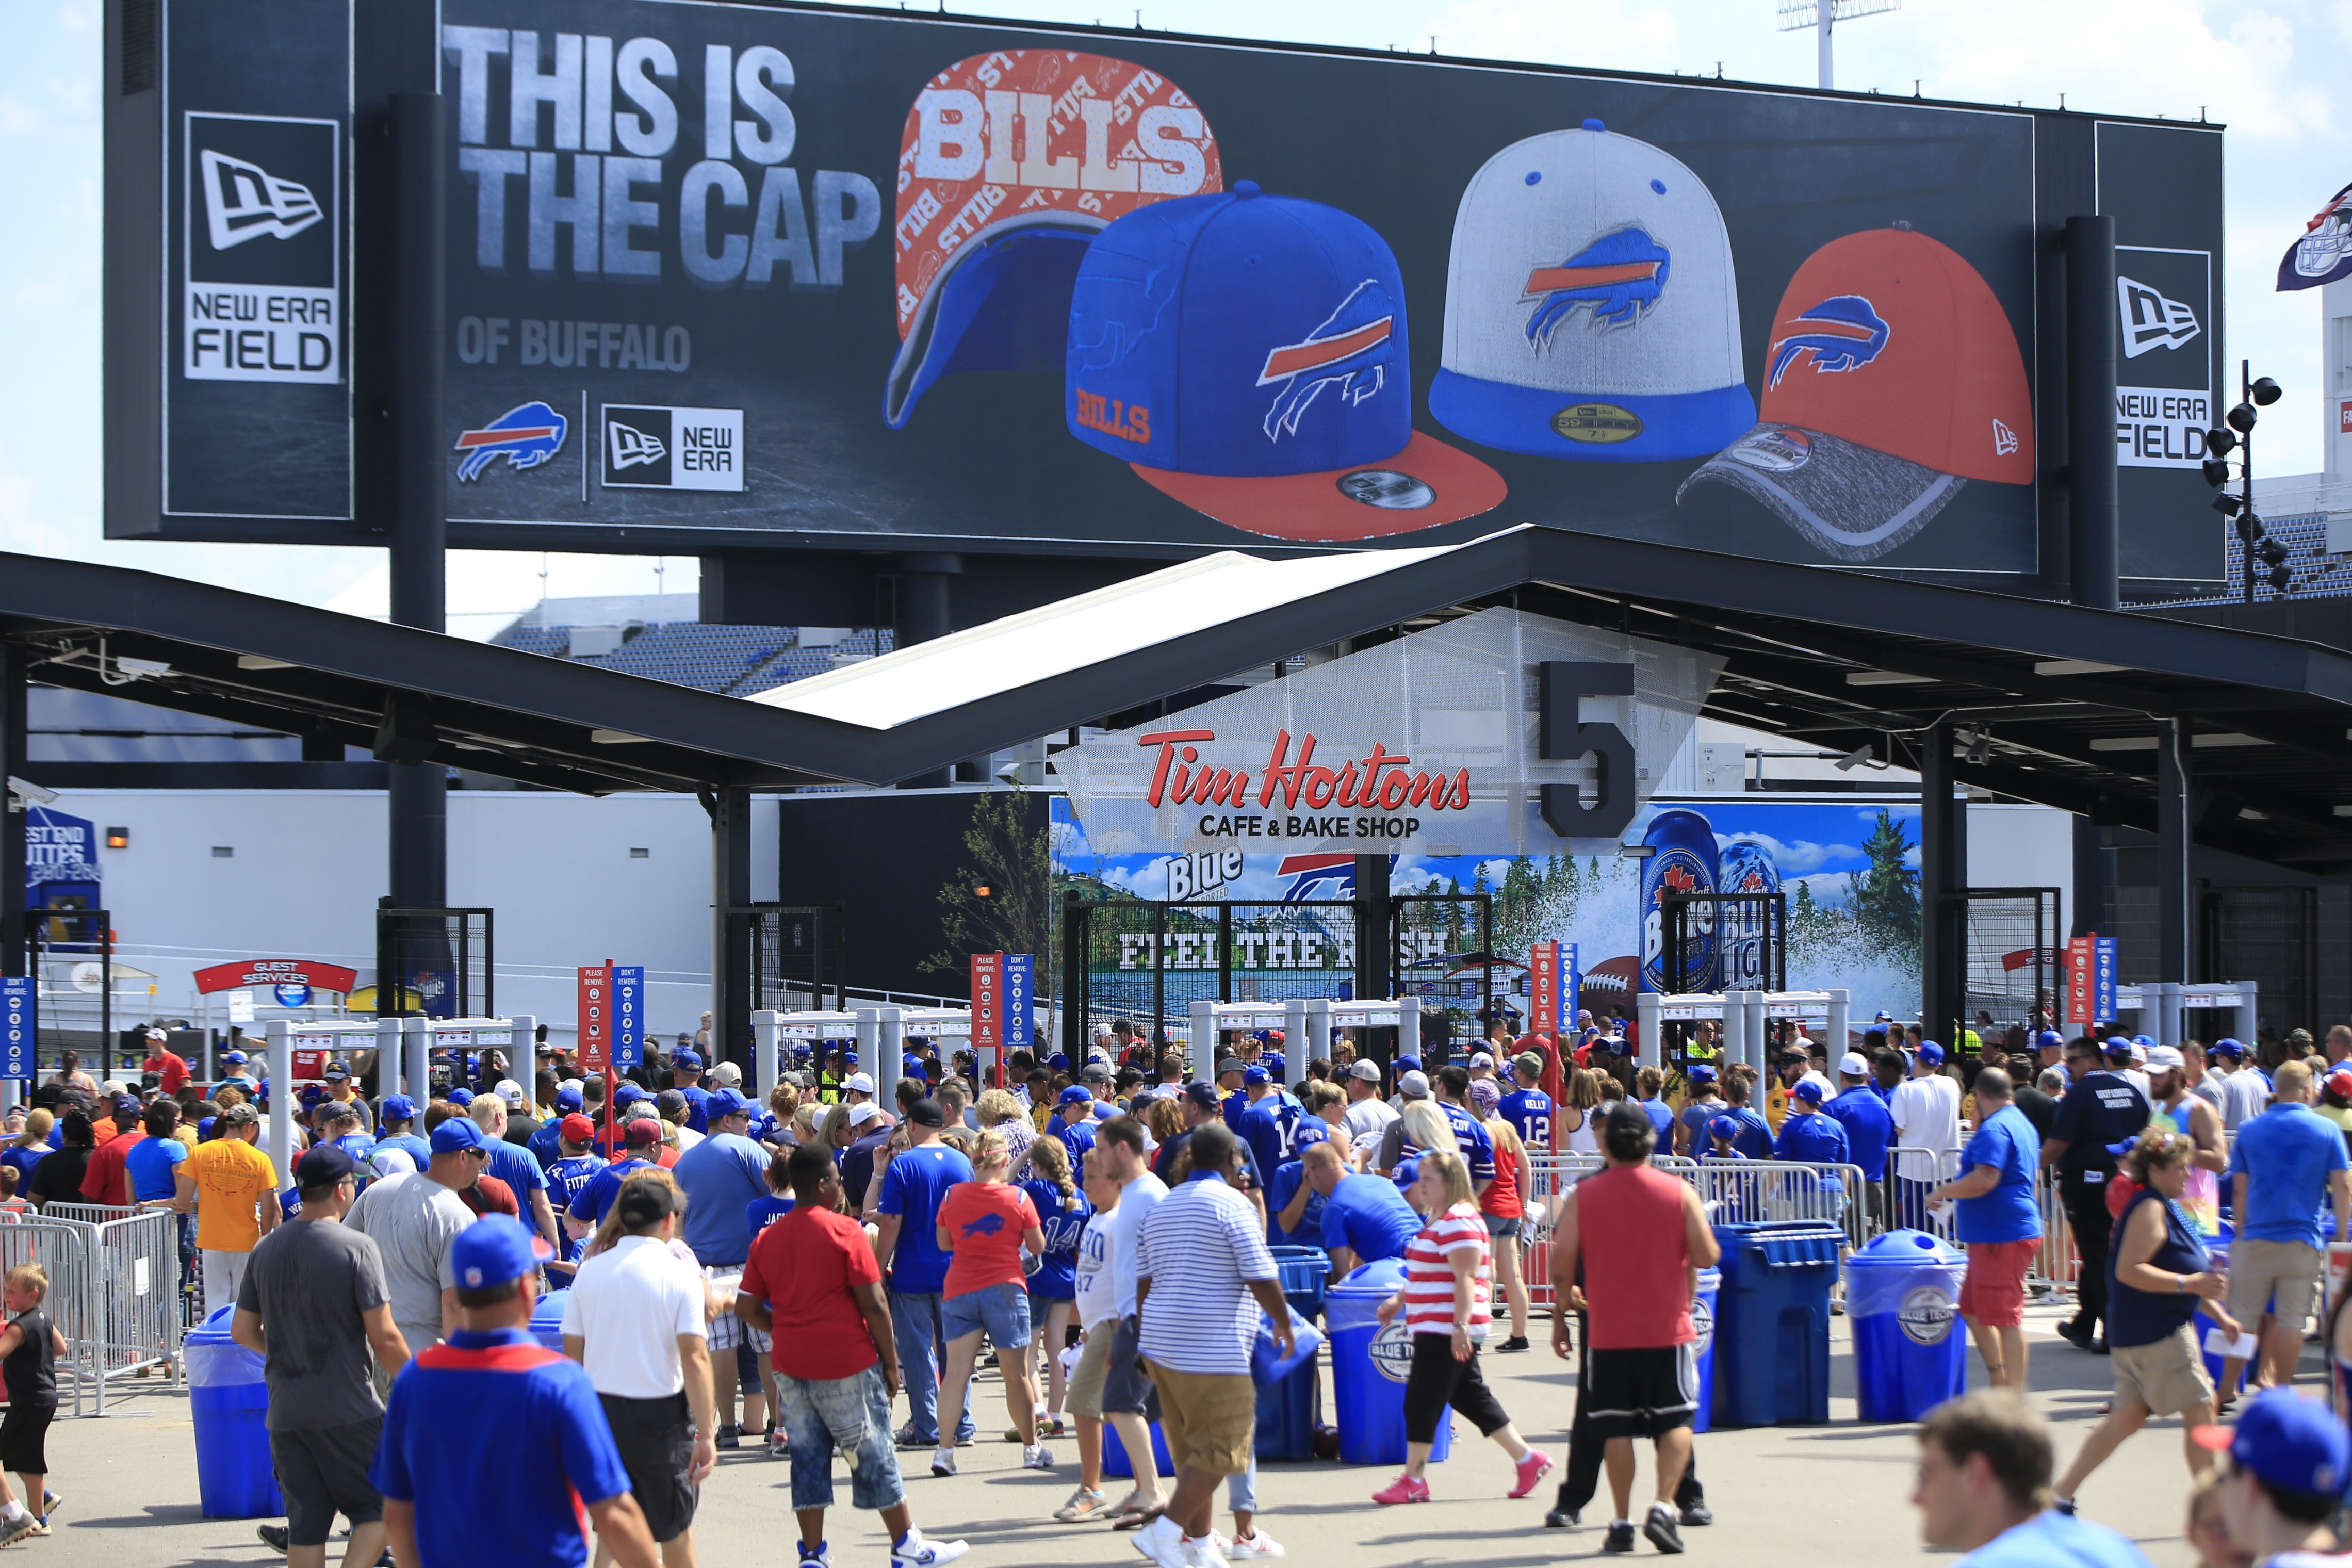 The Buffalo Bills and New York Giants enter newly-named New Era Field Saturday.